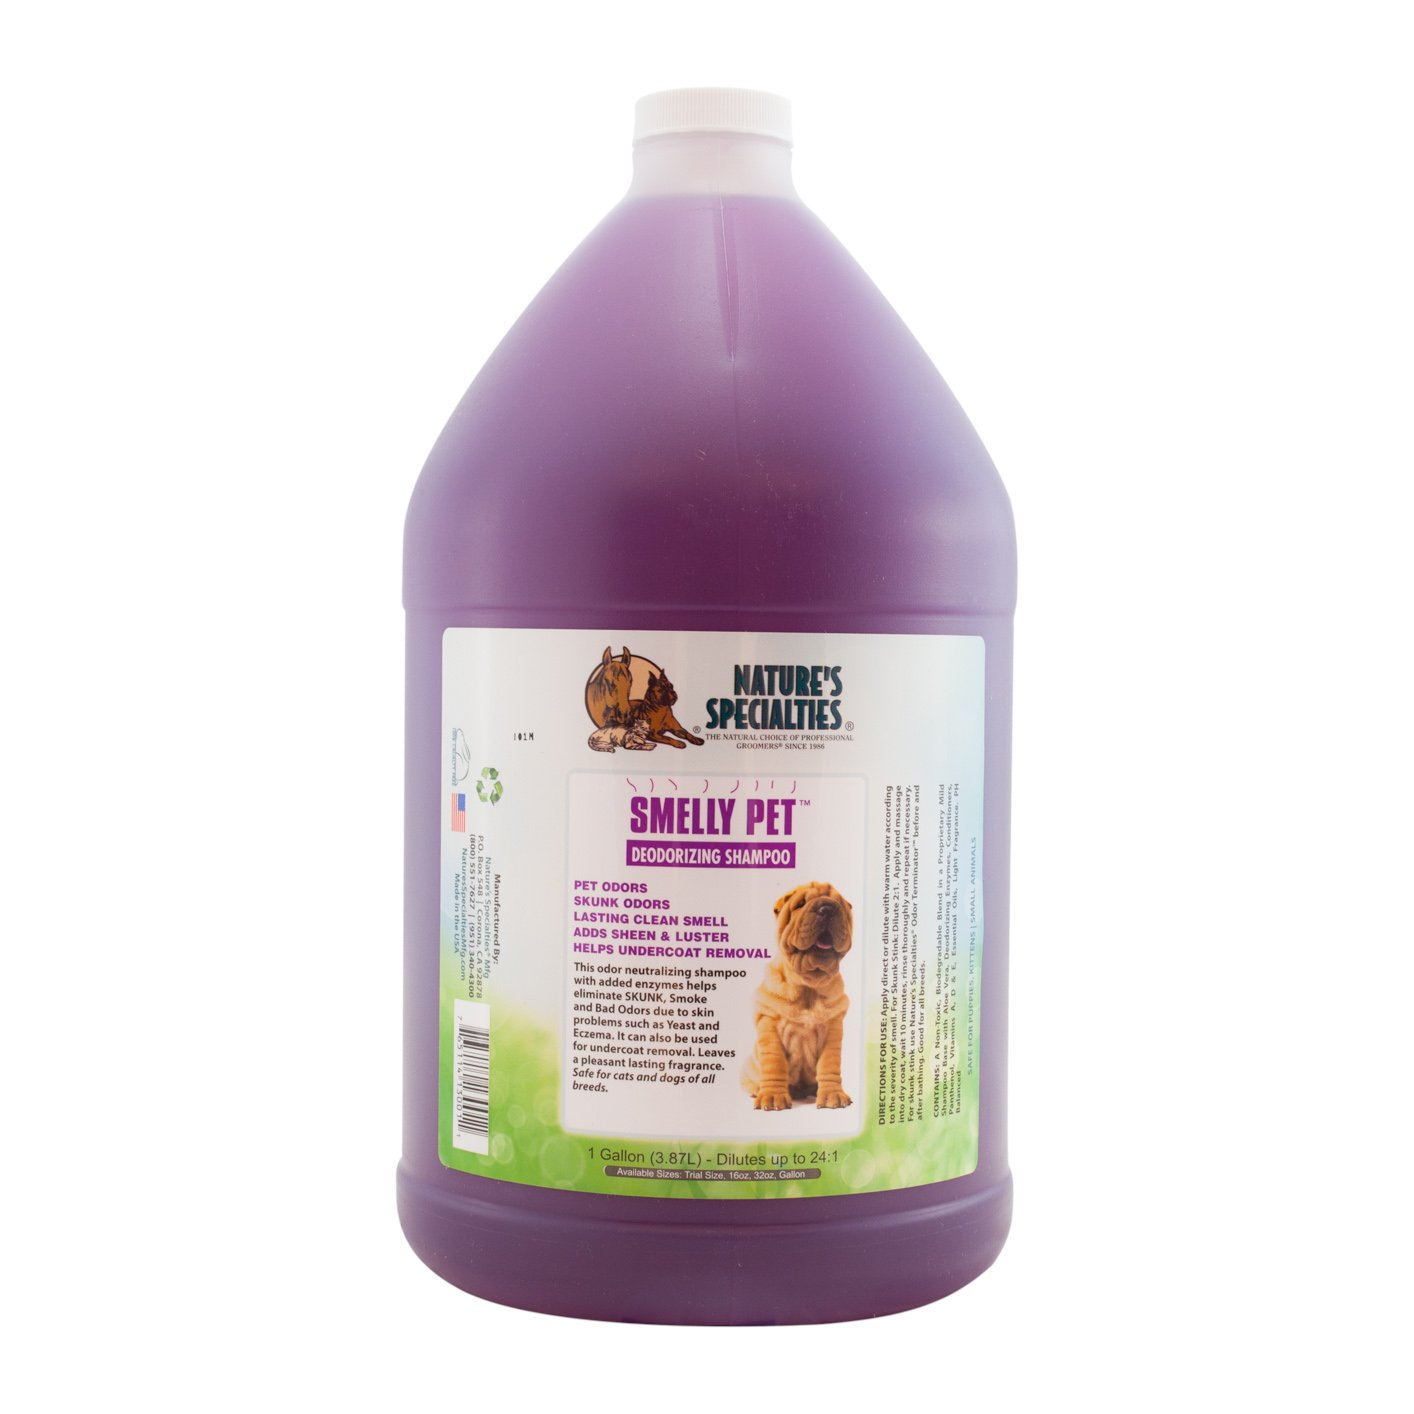 Nature's Specialties Smelly Pet Shampoo by Nature's Specialties Mfg